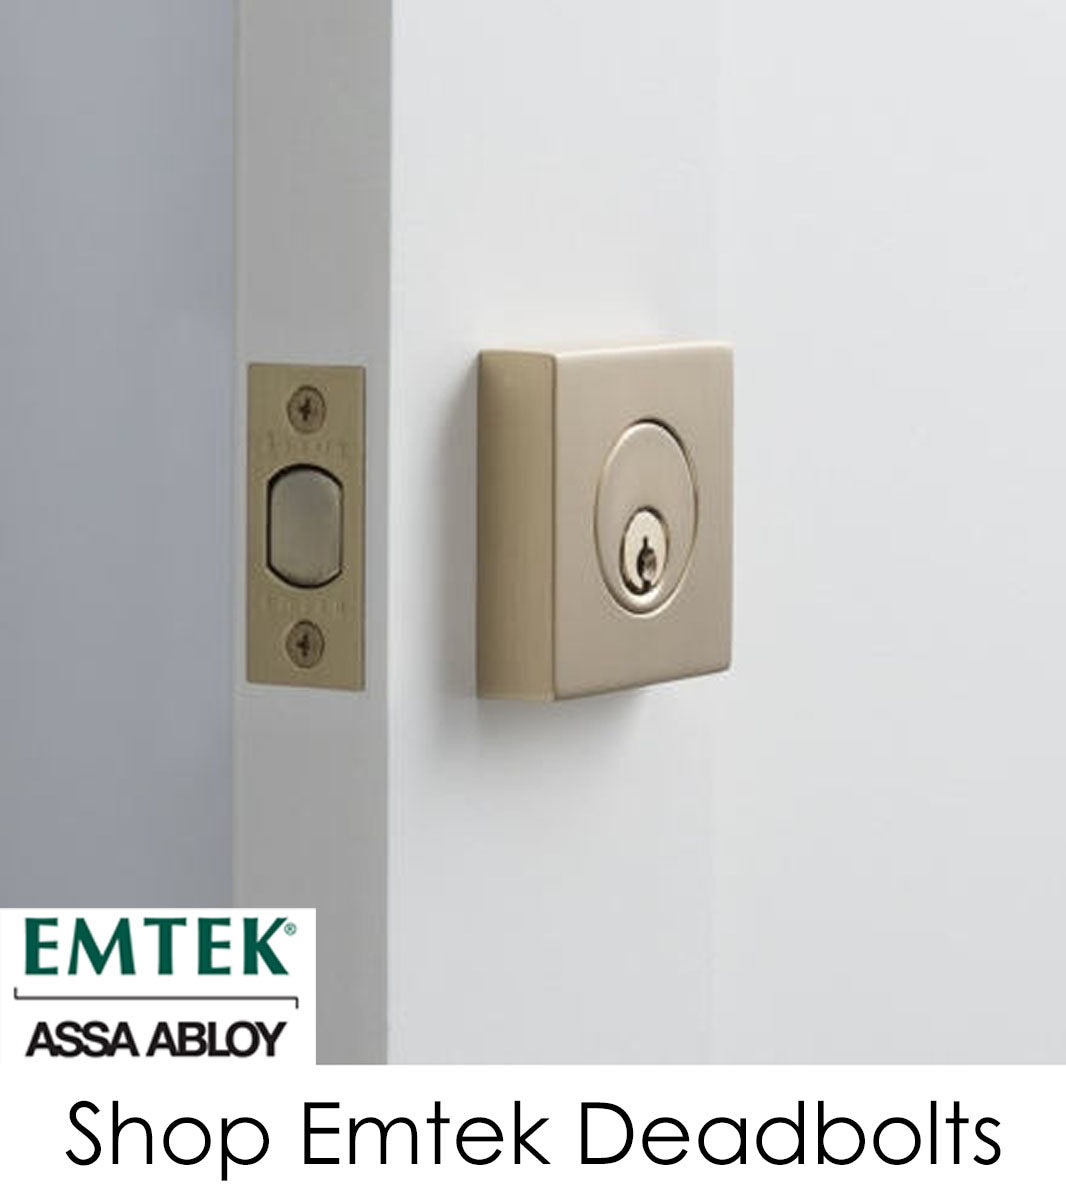 Emtek Deadbolts Link